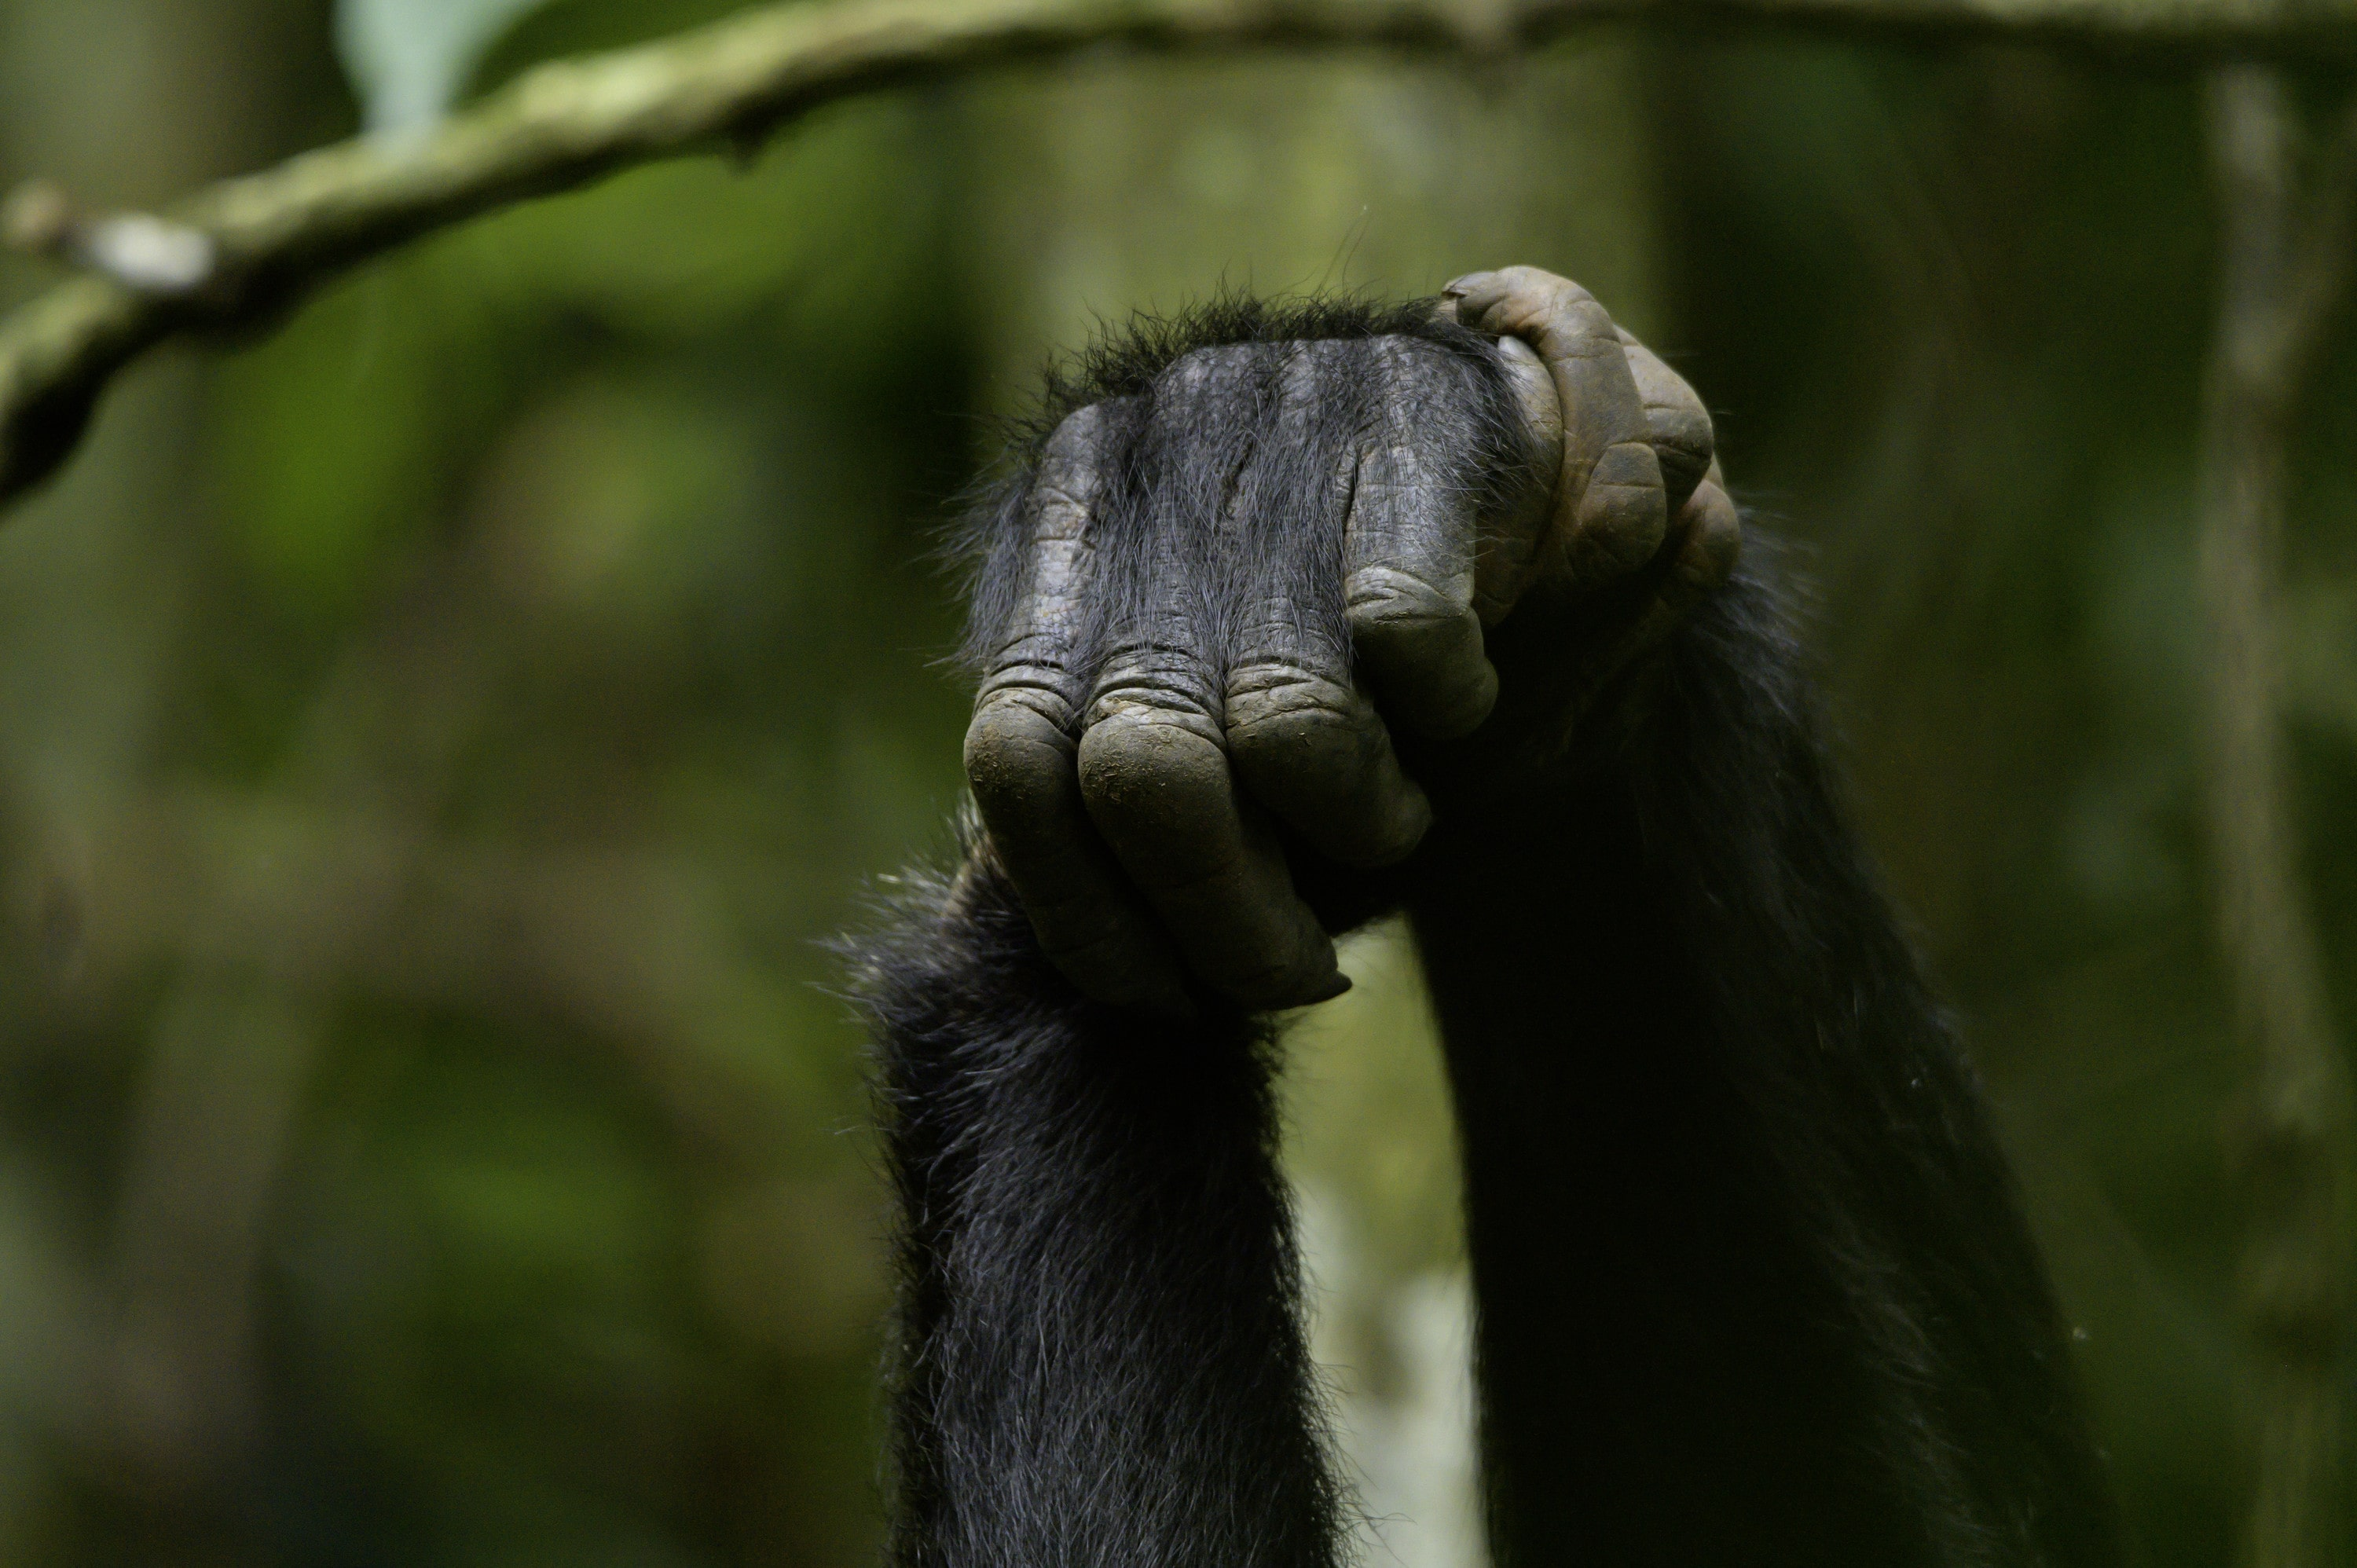 Chimps clasp hands while grooming. (National Geographic for Disney+/Max Kolbl)